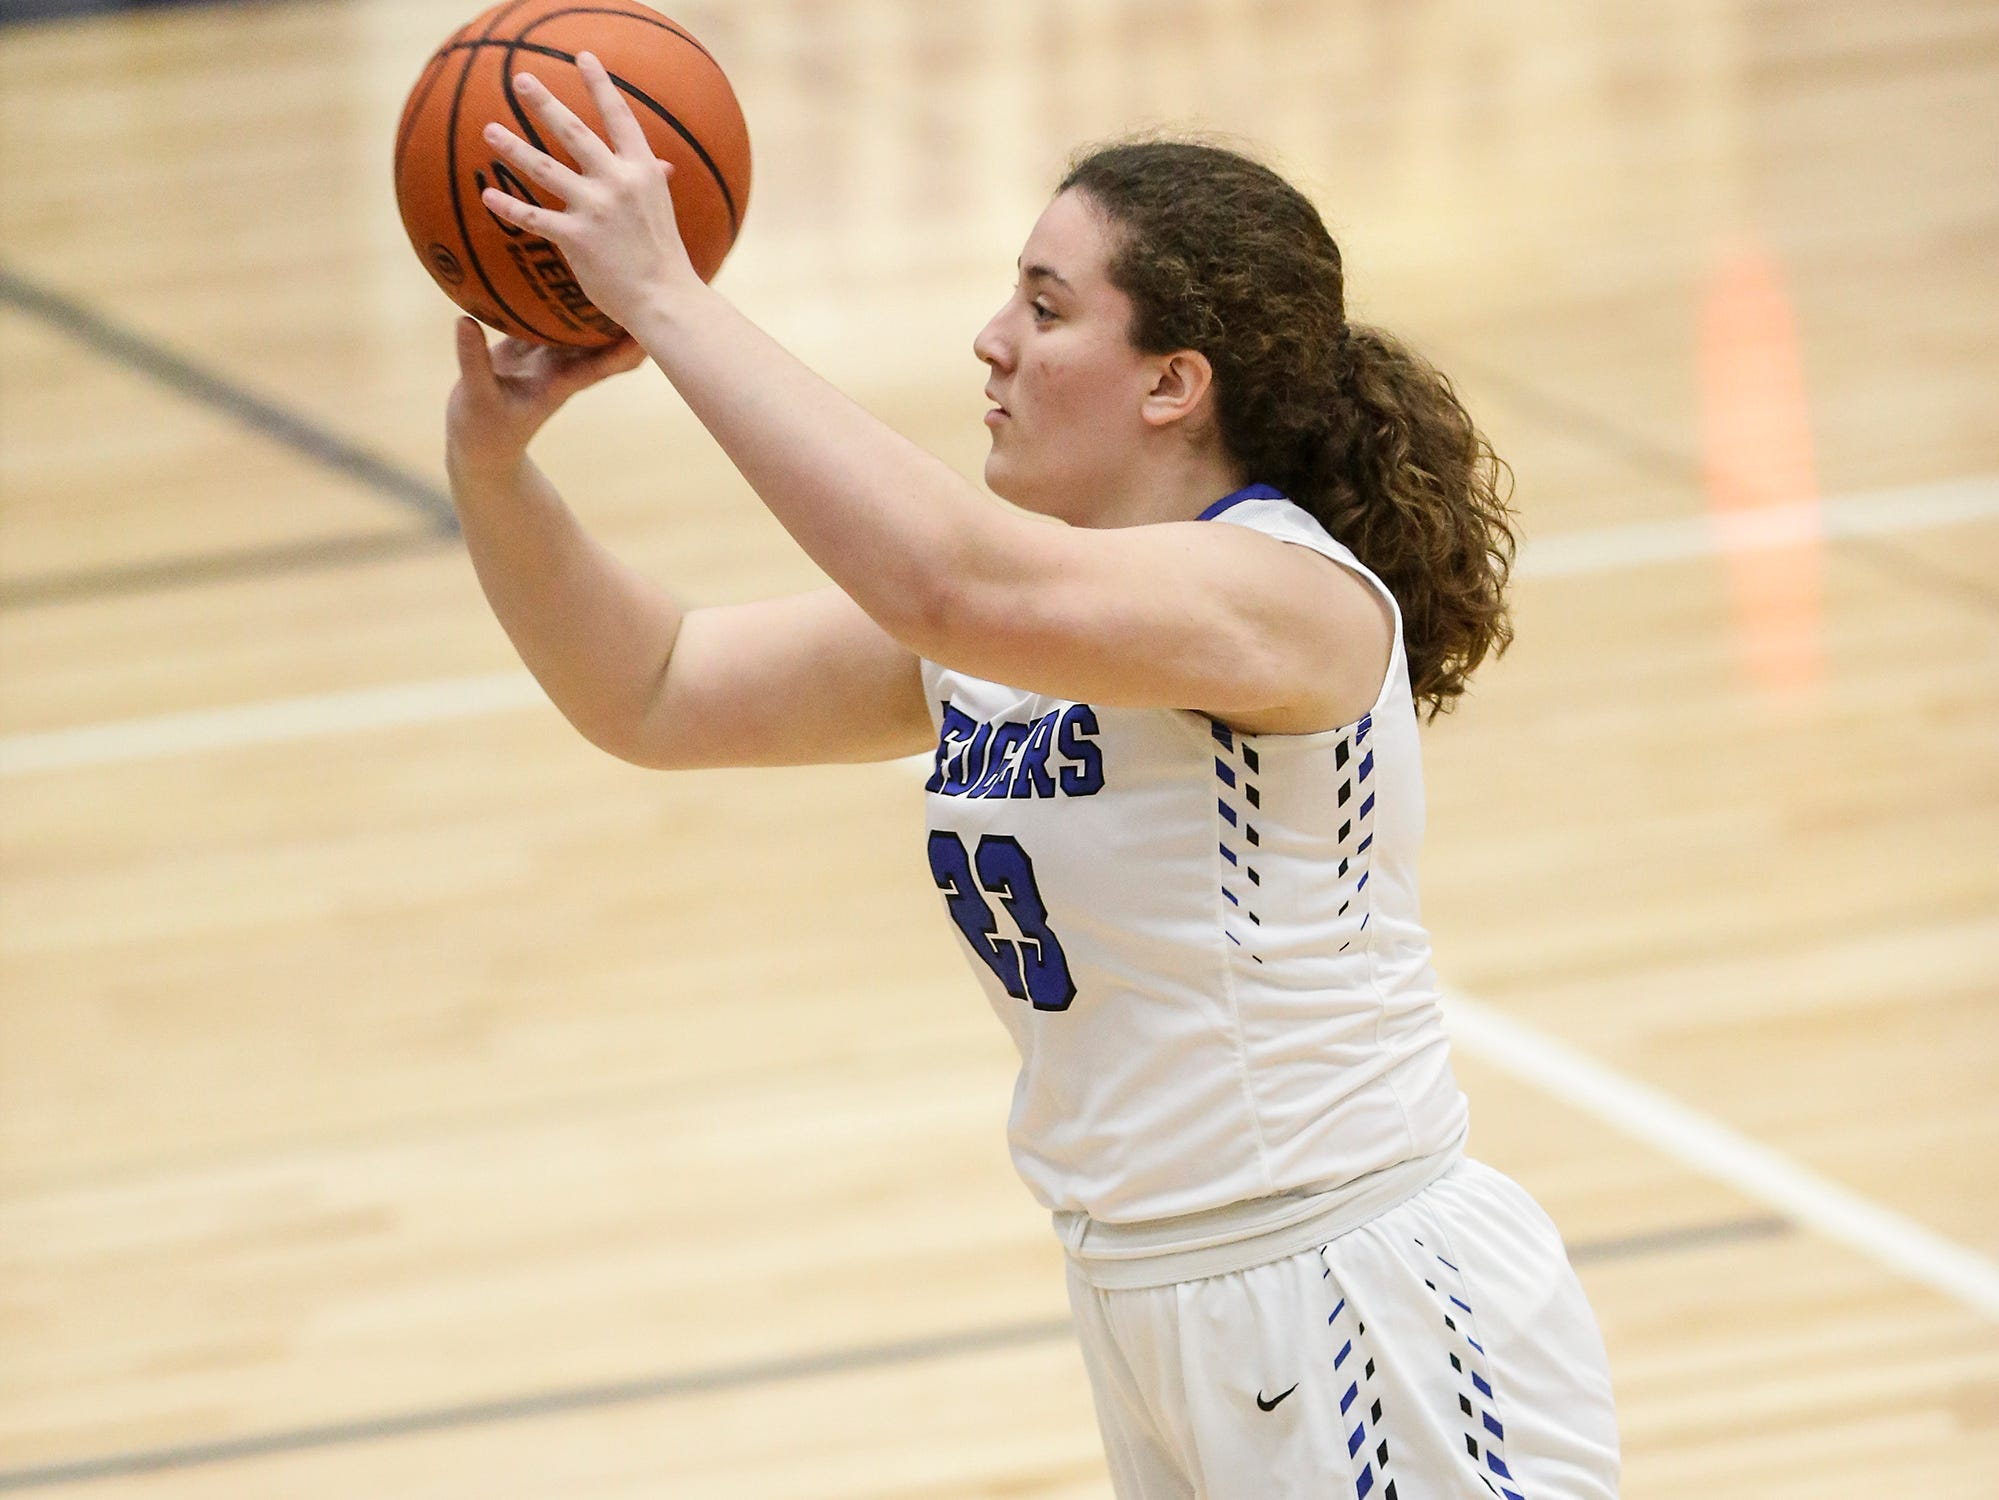 St. Mary's Springs girls basketball's Cecelia Rodriguez attempts a three point shot against Two Rivers High School during their game Friday, November 16, 2018 in Fond du Lac. Doug Raflik/USA TODAY NETWORK-Wisconsin